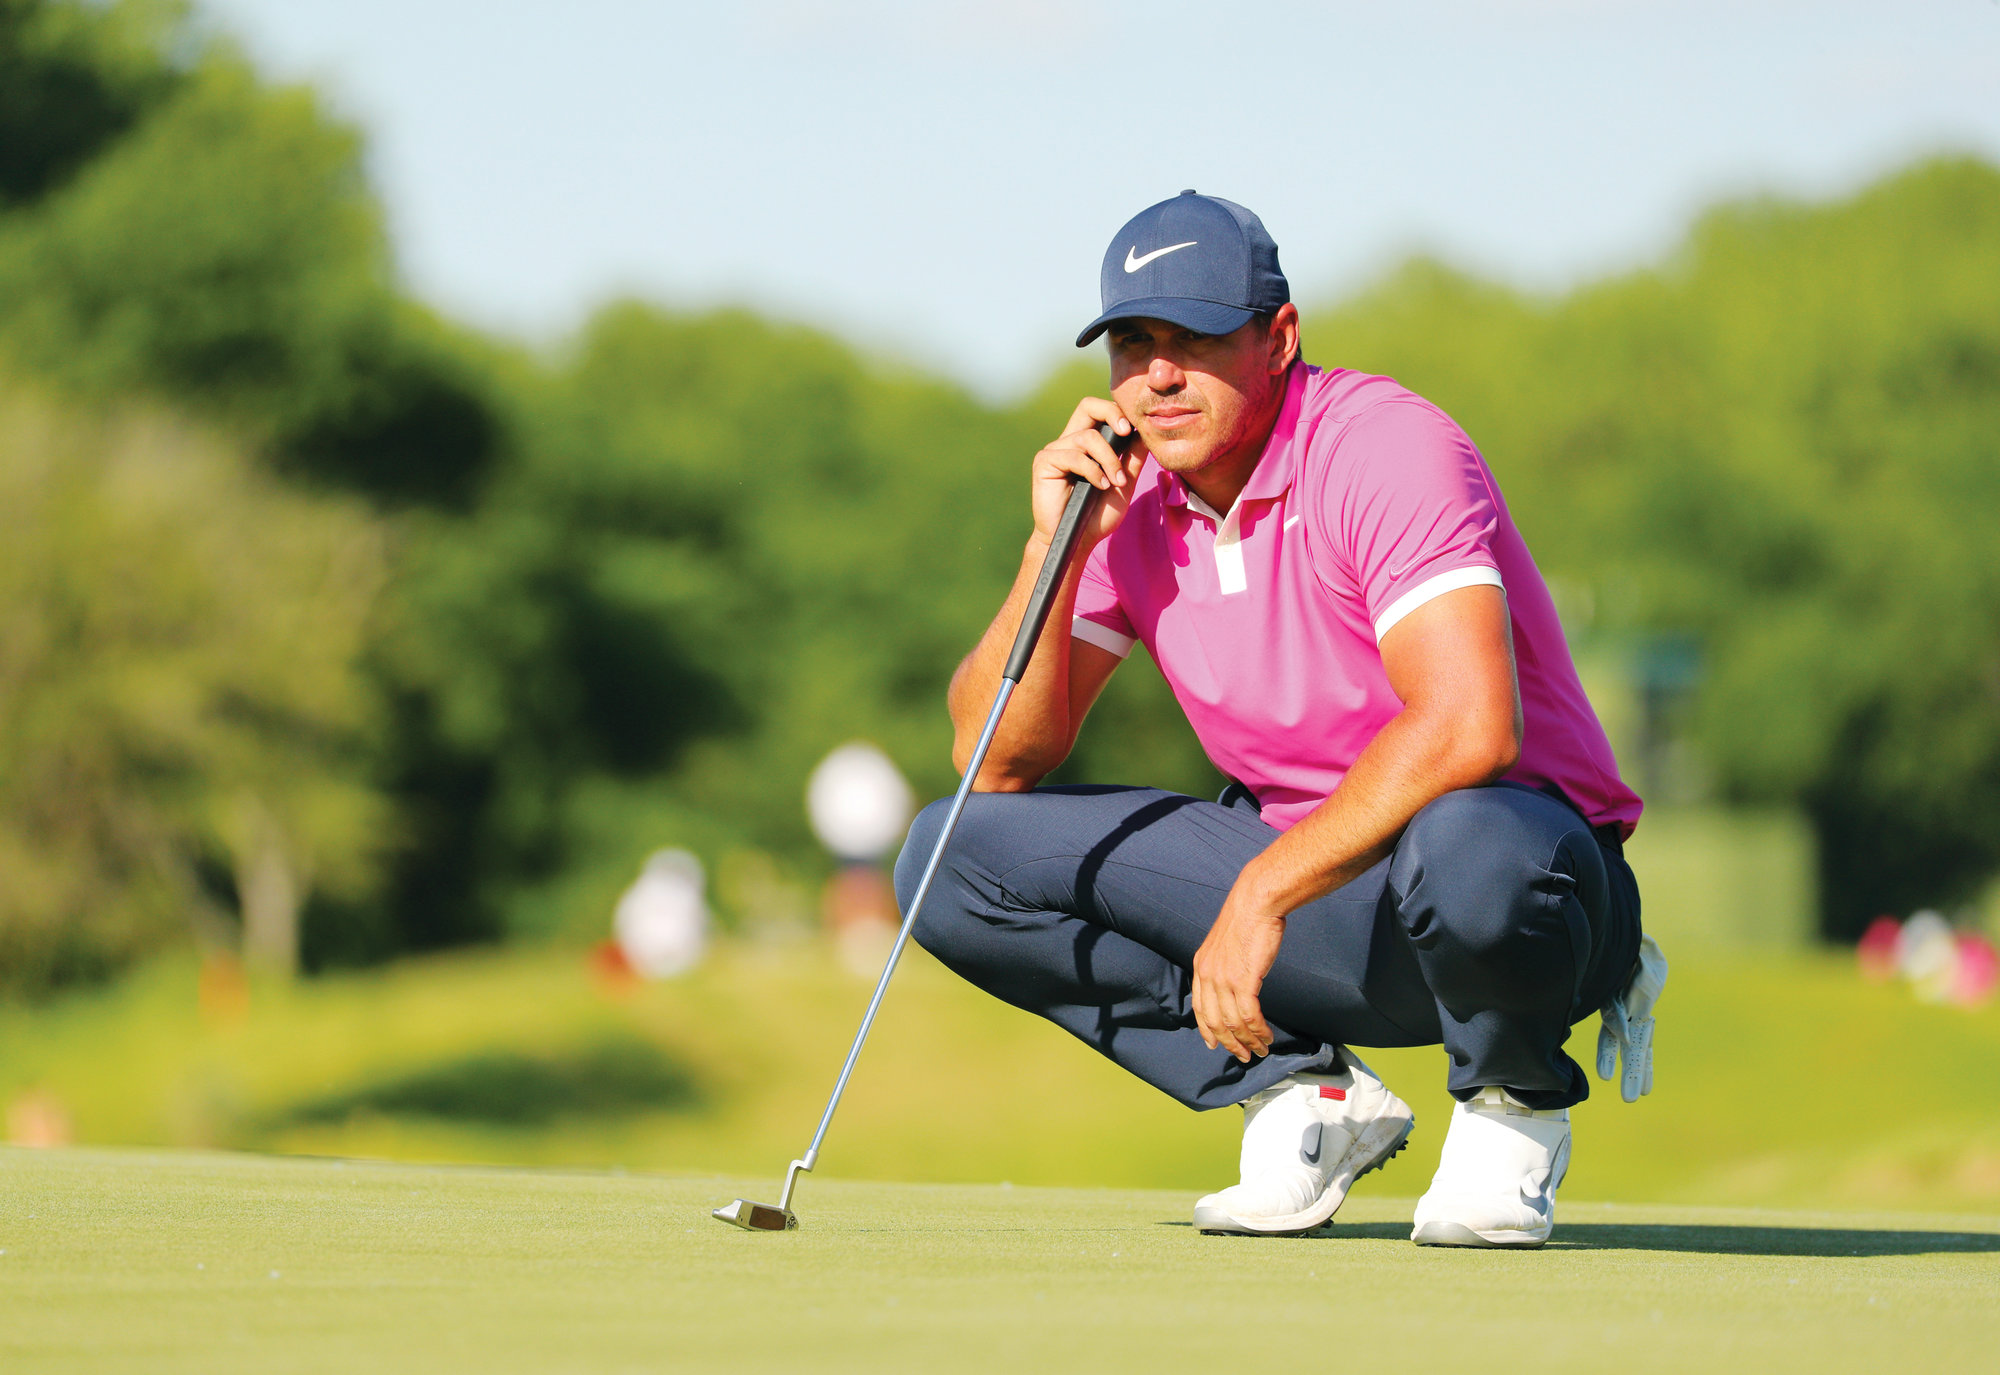 Brooks Koepka is feeling confident as he prepares to defend his title in the PGA Championship, which begins on Thursday in Farmingdale, New York.